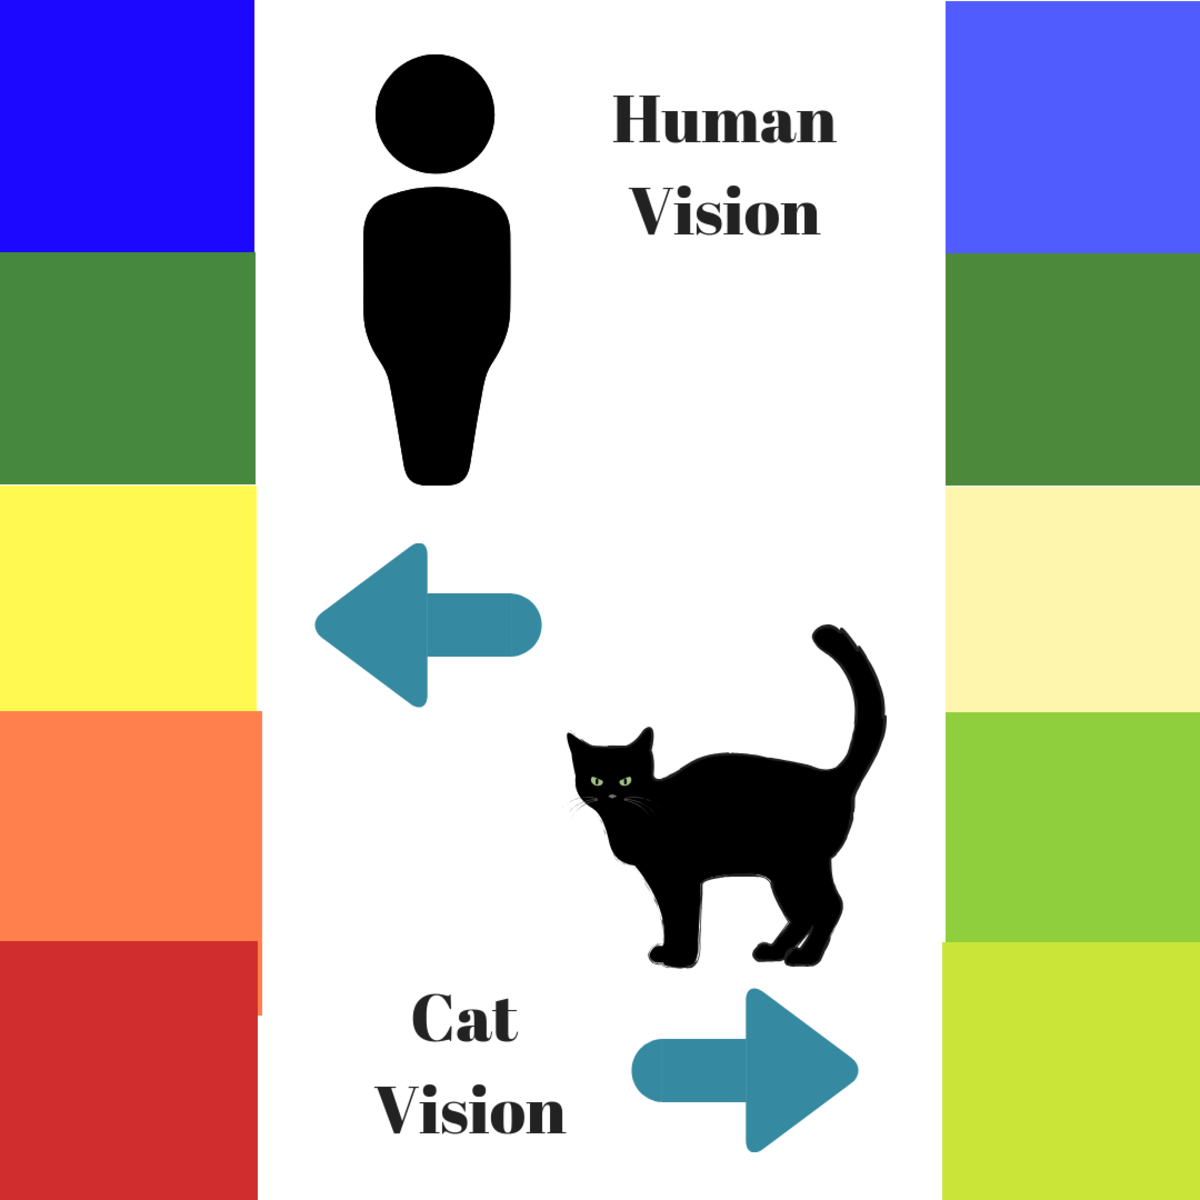 A comparison of the colors humans and cats see.